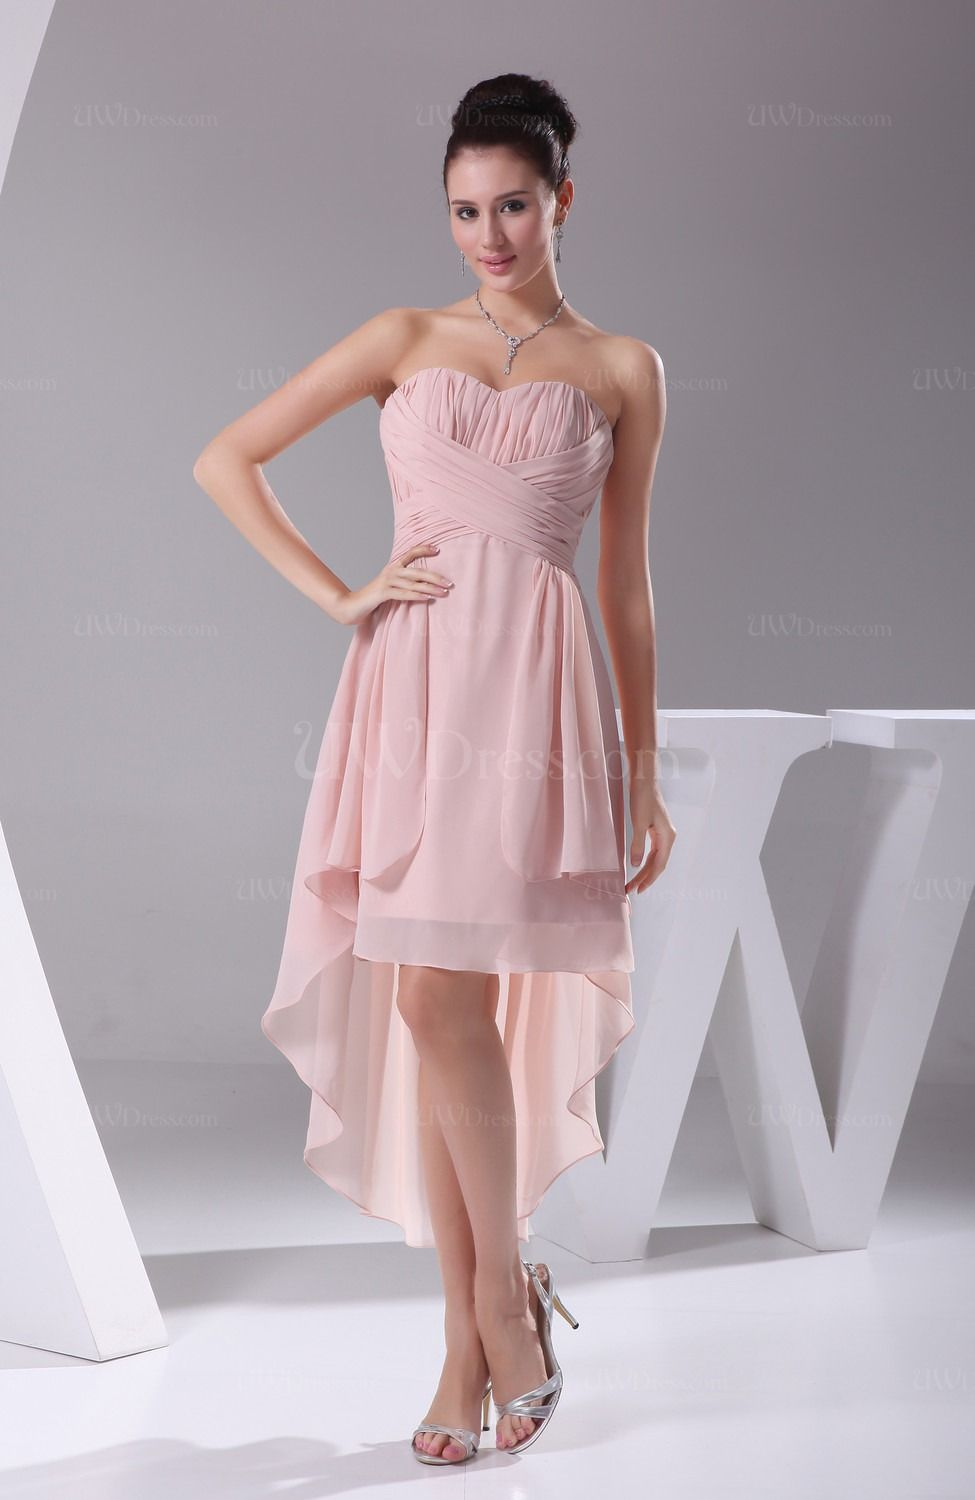 Pink bridesmaid dresses wedding dress pinterest pale pink pink bridesmaid dresses ombrellifo Gallery